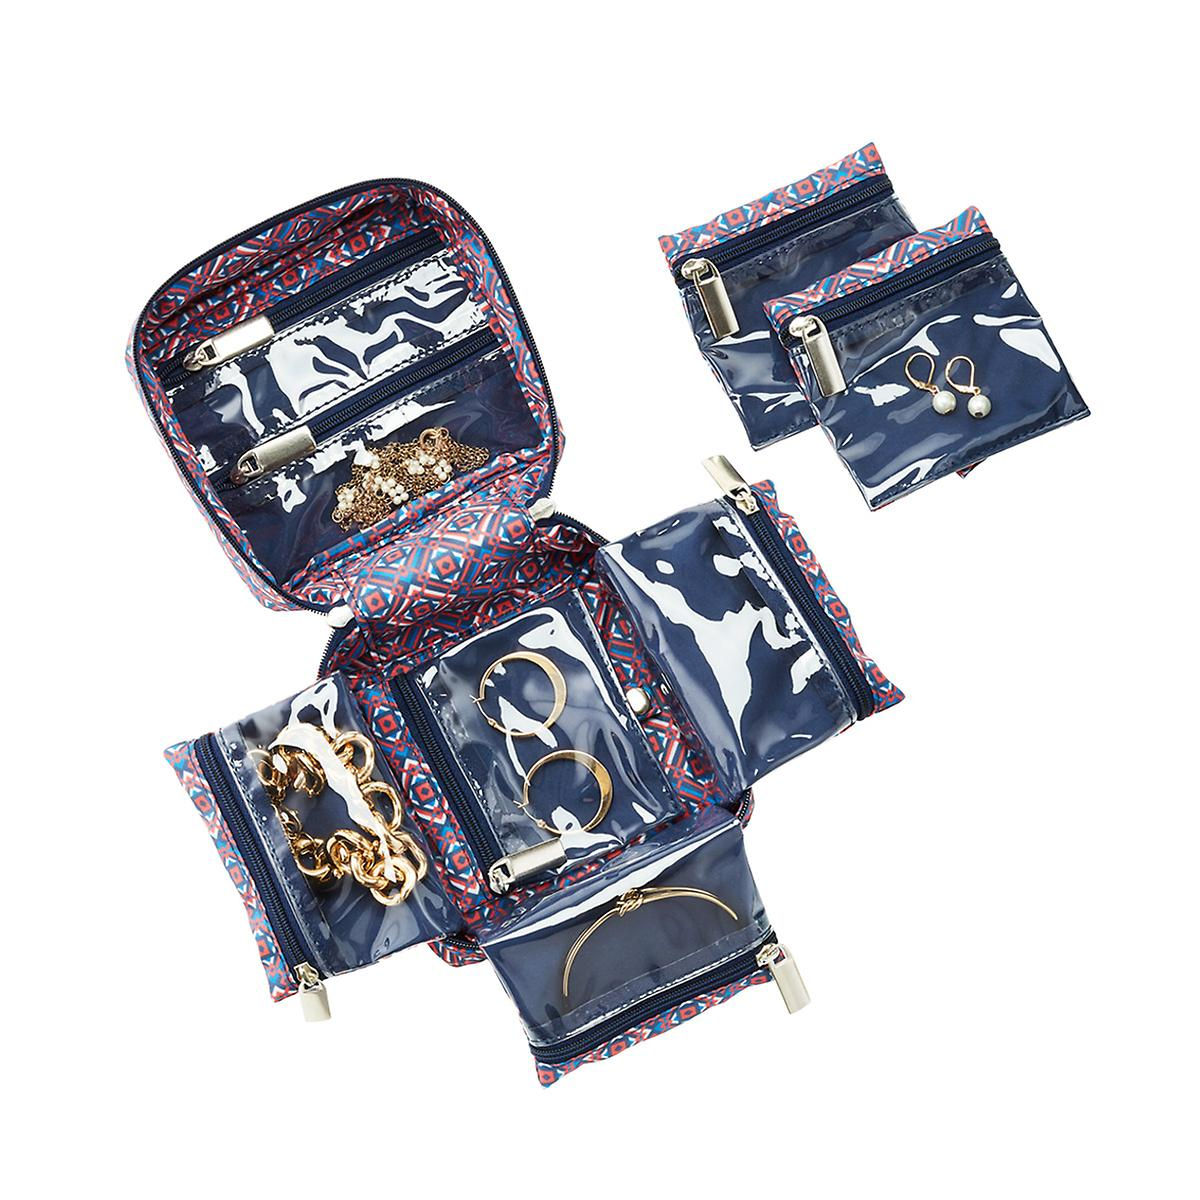 In Bag Blue Tile Travel Jewelry Organizer